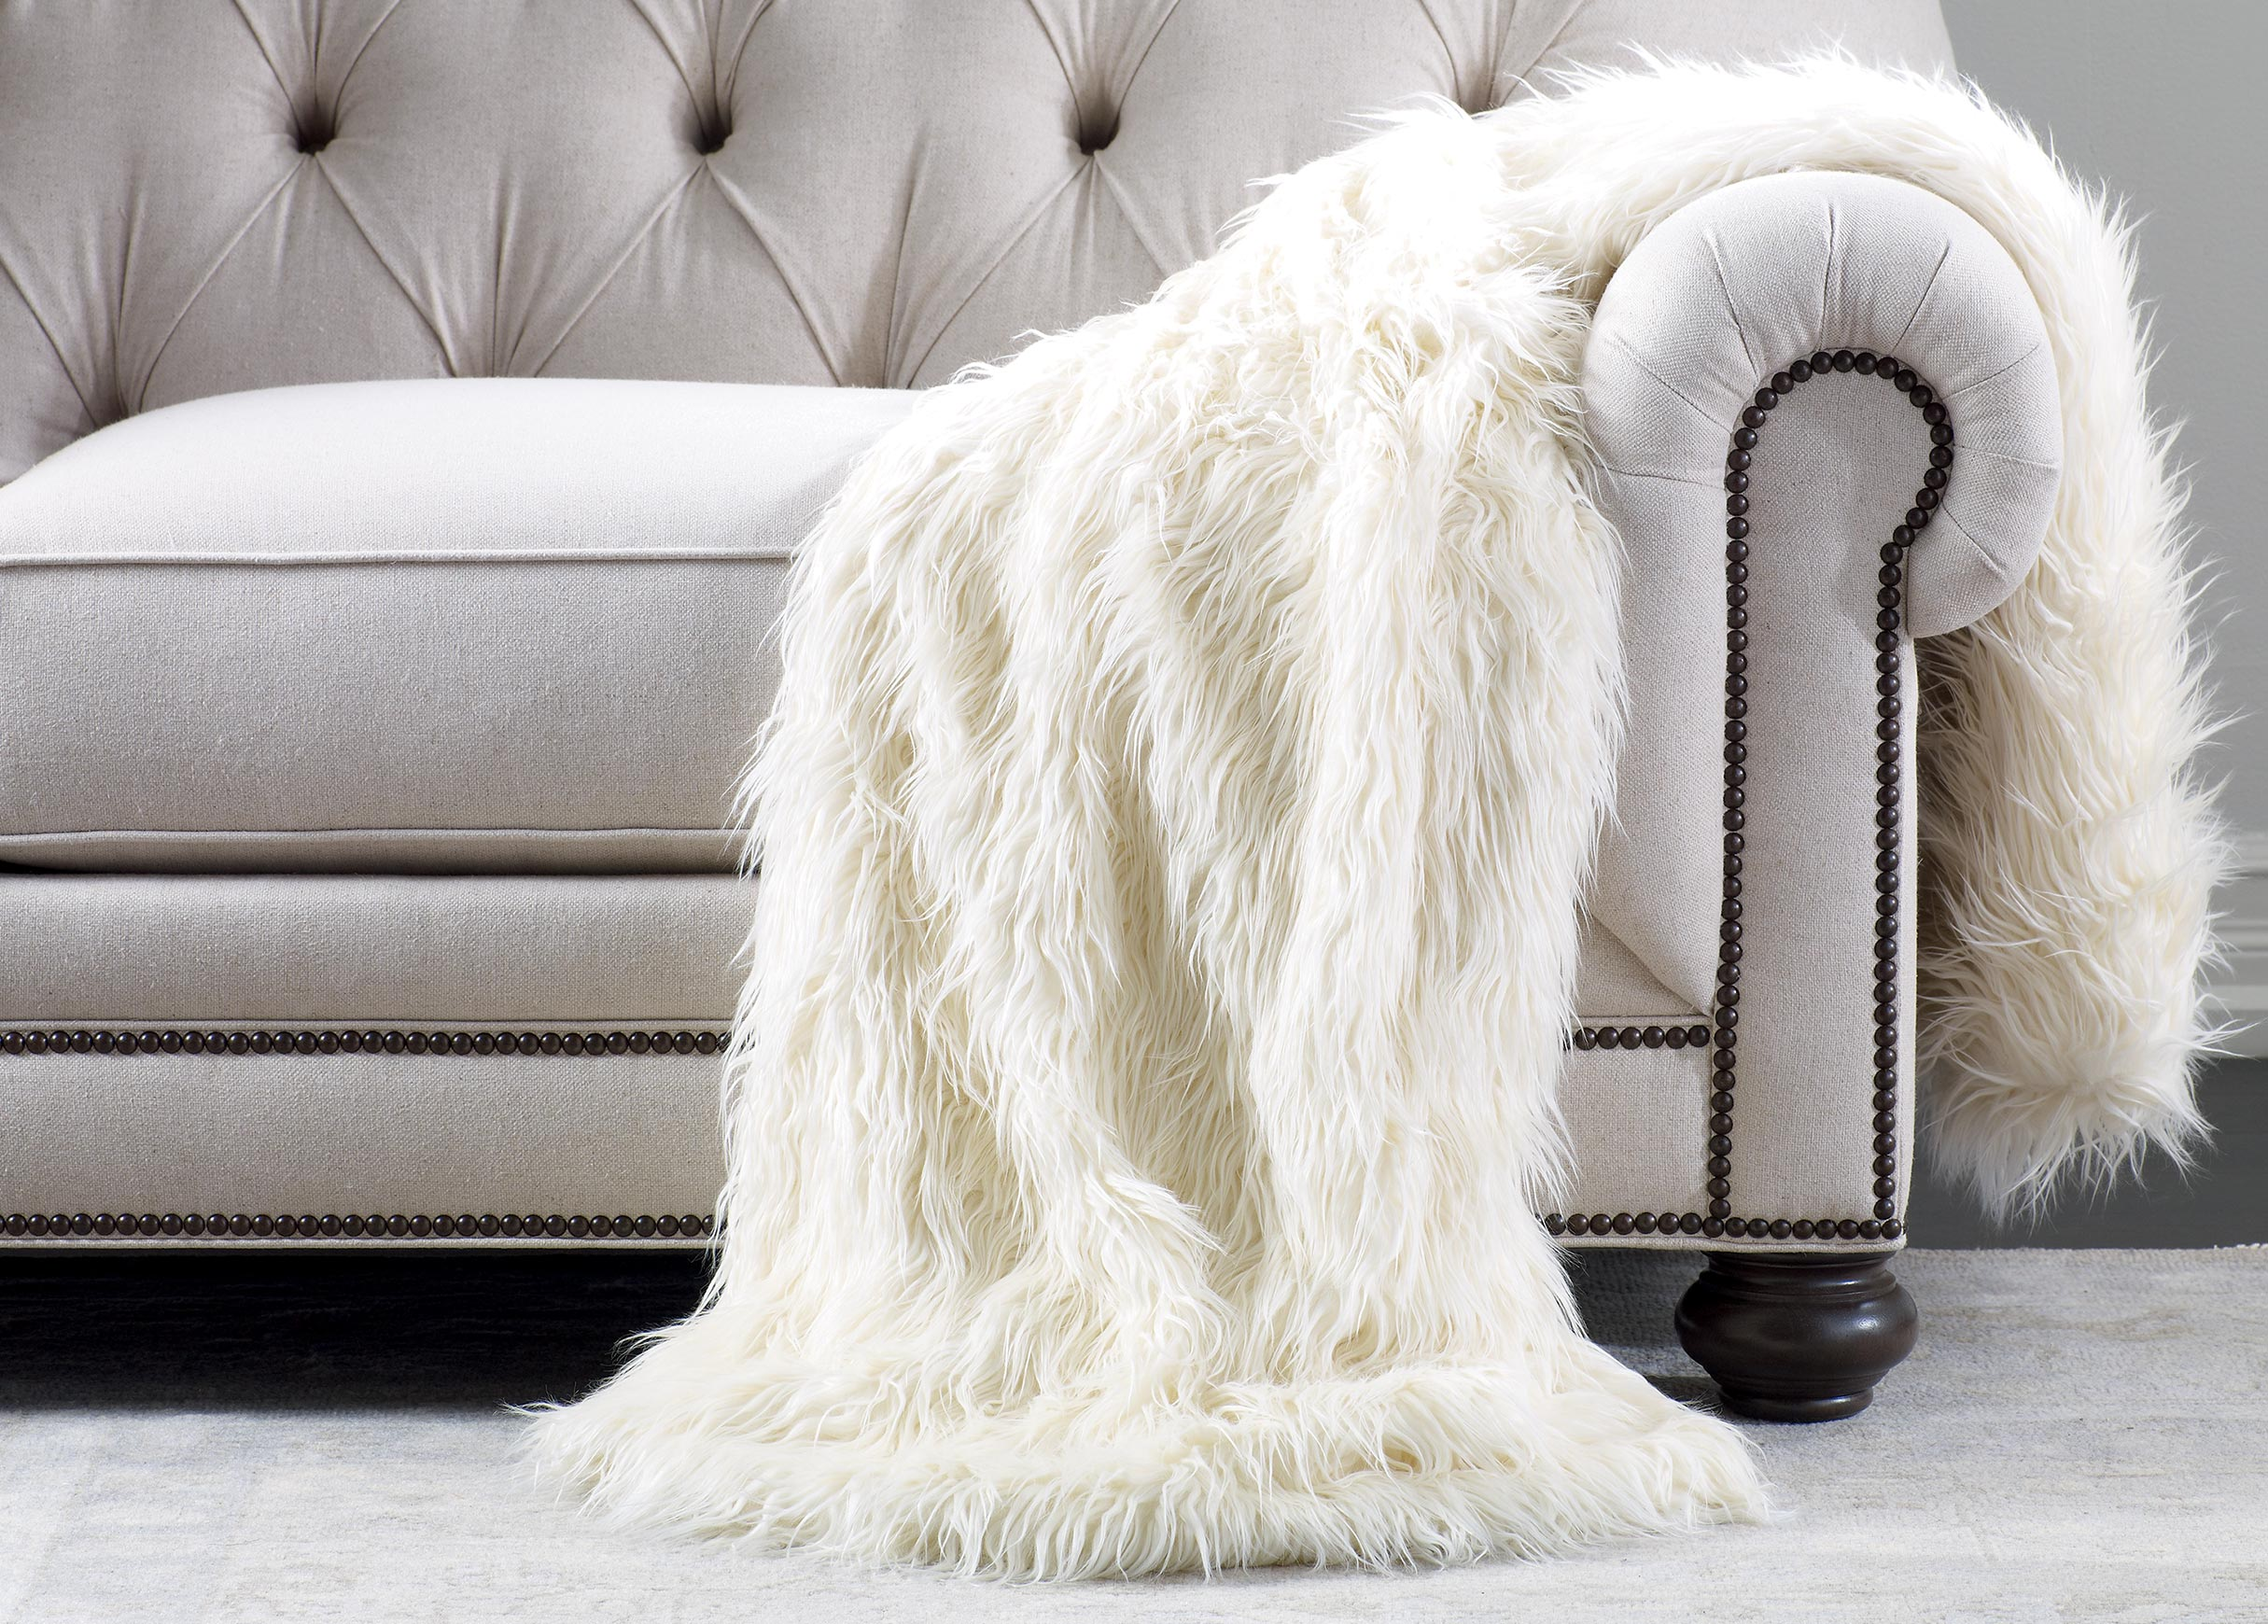 Find Blankets & Throws at Wayfair. Enjoy Free Shipping & browse our great selection of Bed & Bath, Faux Fur Throws, Woven Blankets and more! Free Shipping Over $49*.